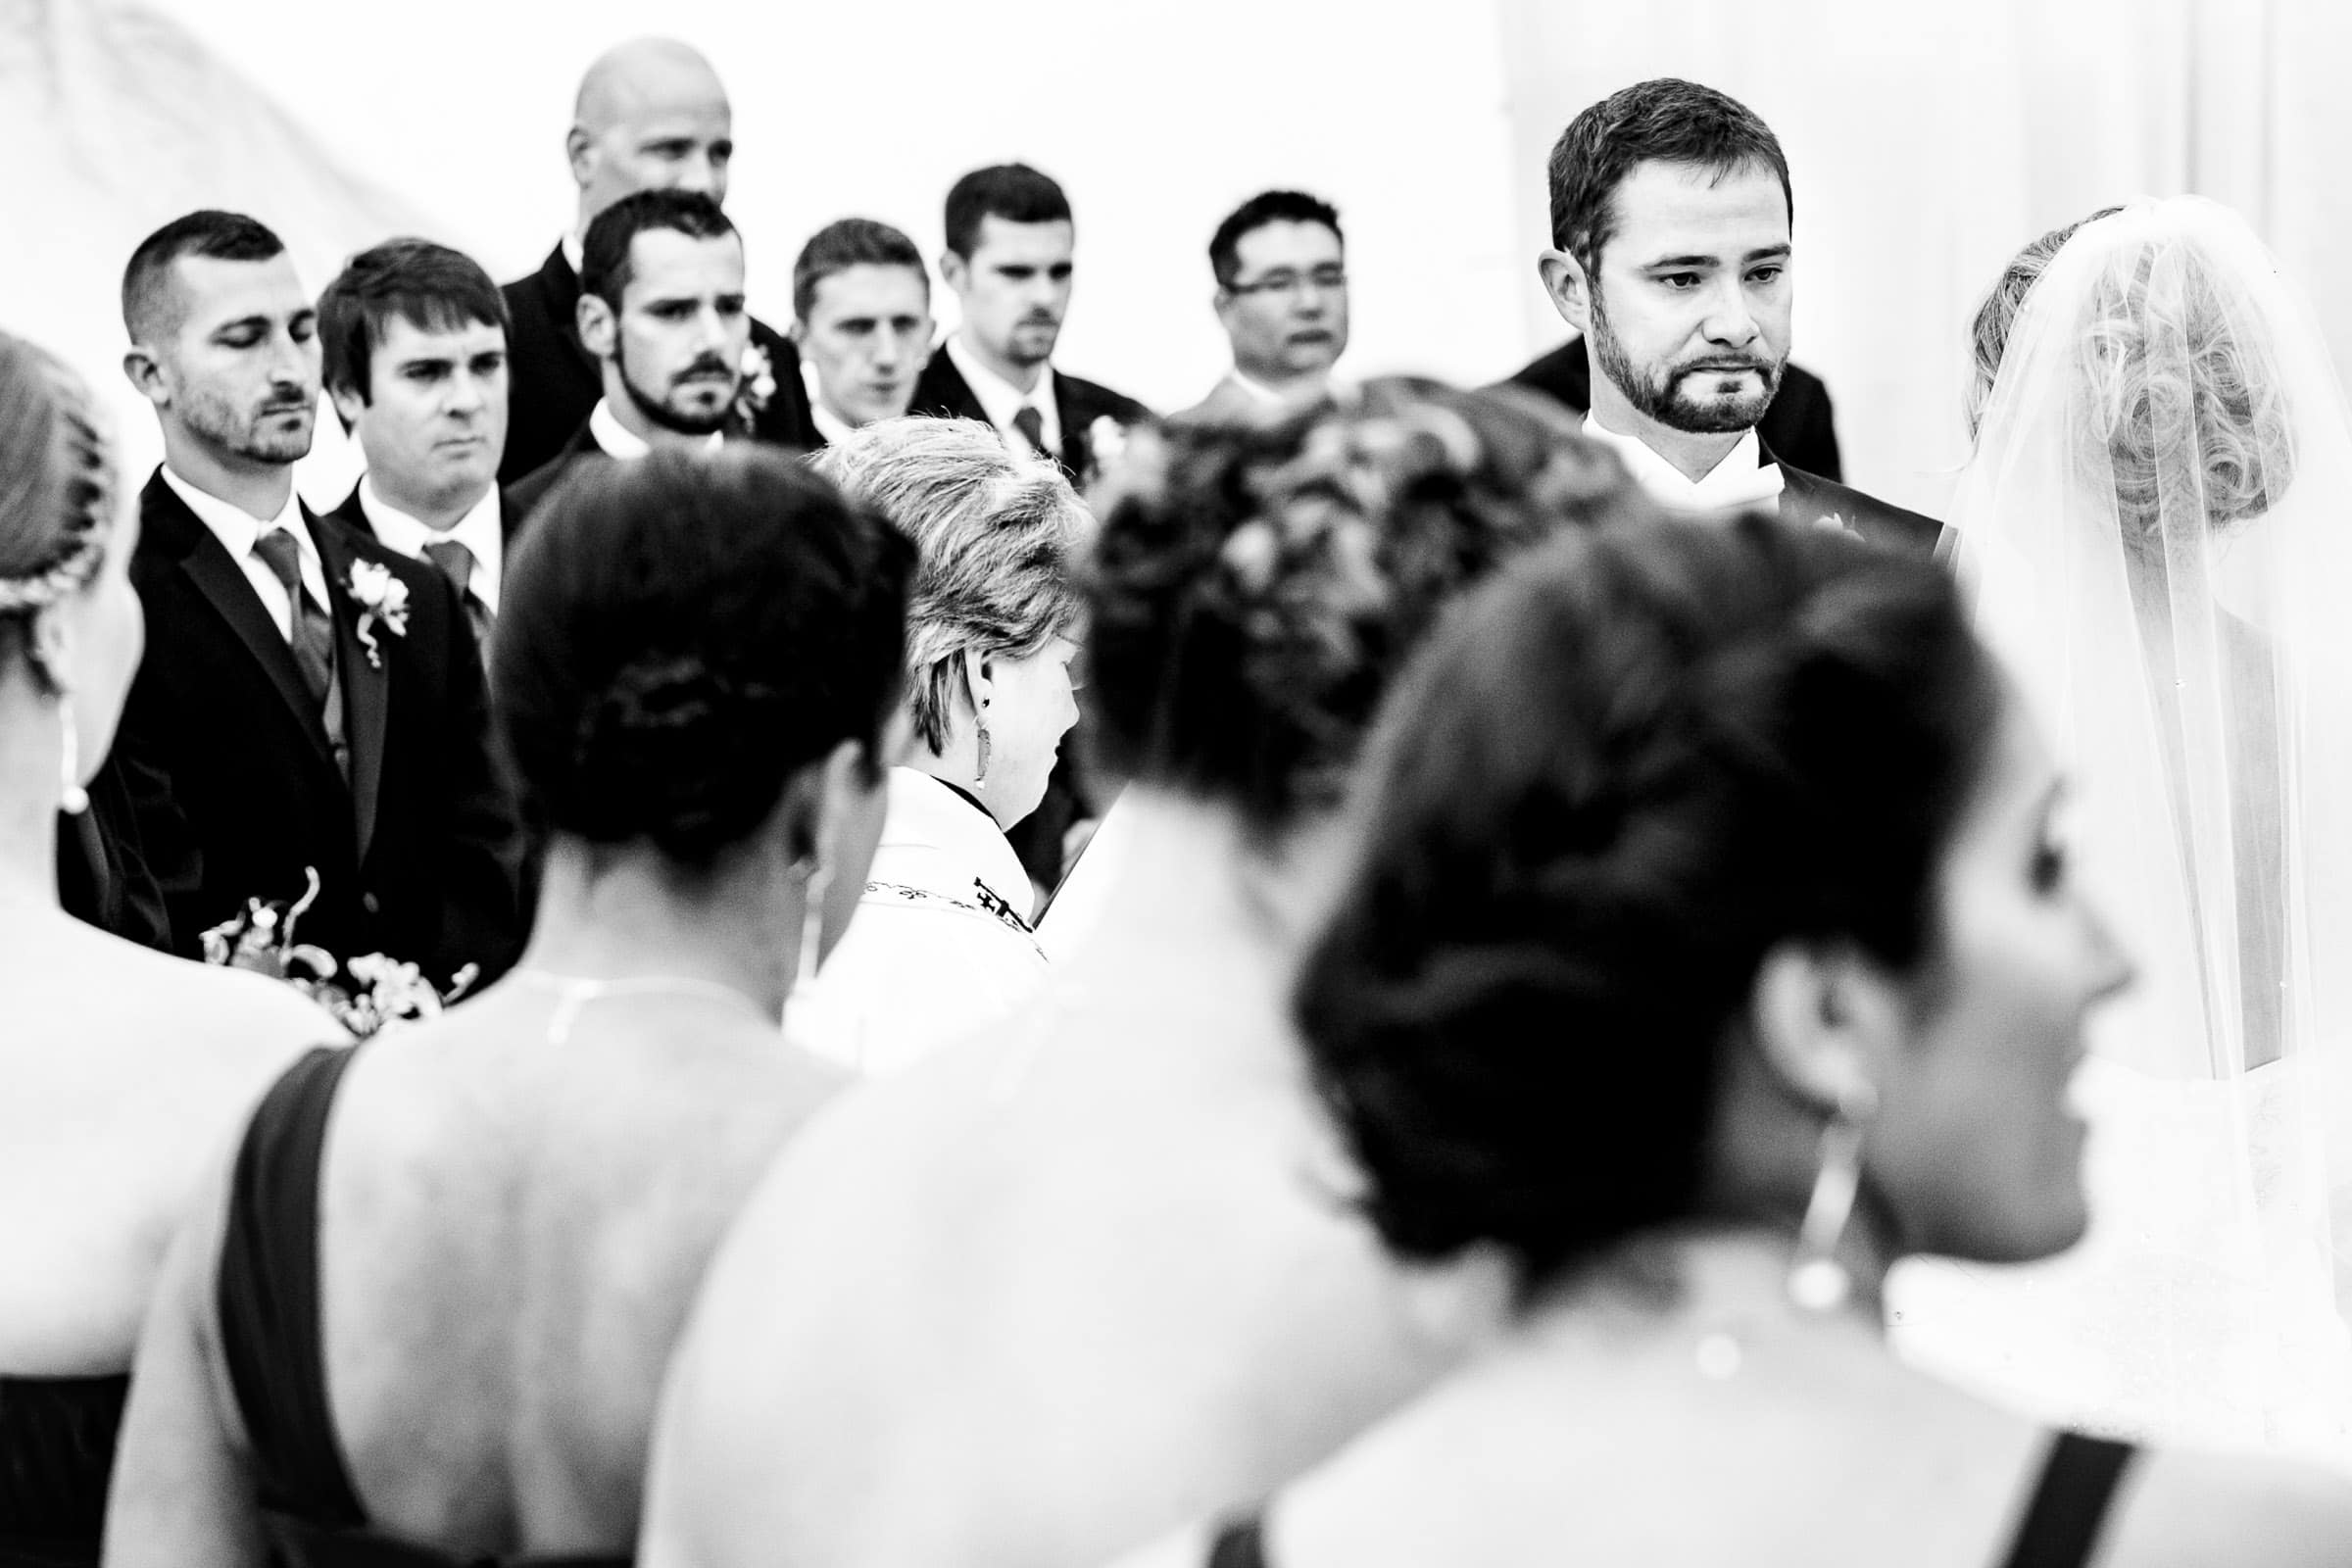 Emotional photo of a groom layered inside the bridal party during a Trapp Family Lodge wedding ceremony in Stowe, Vermont.